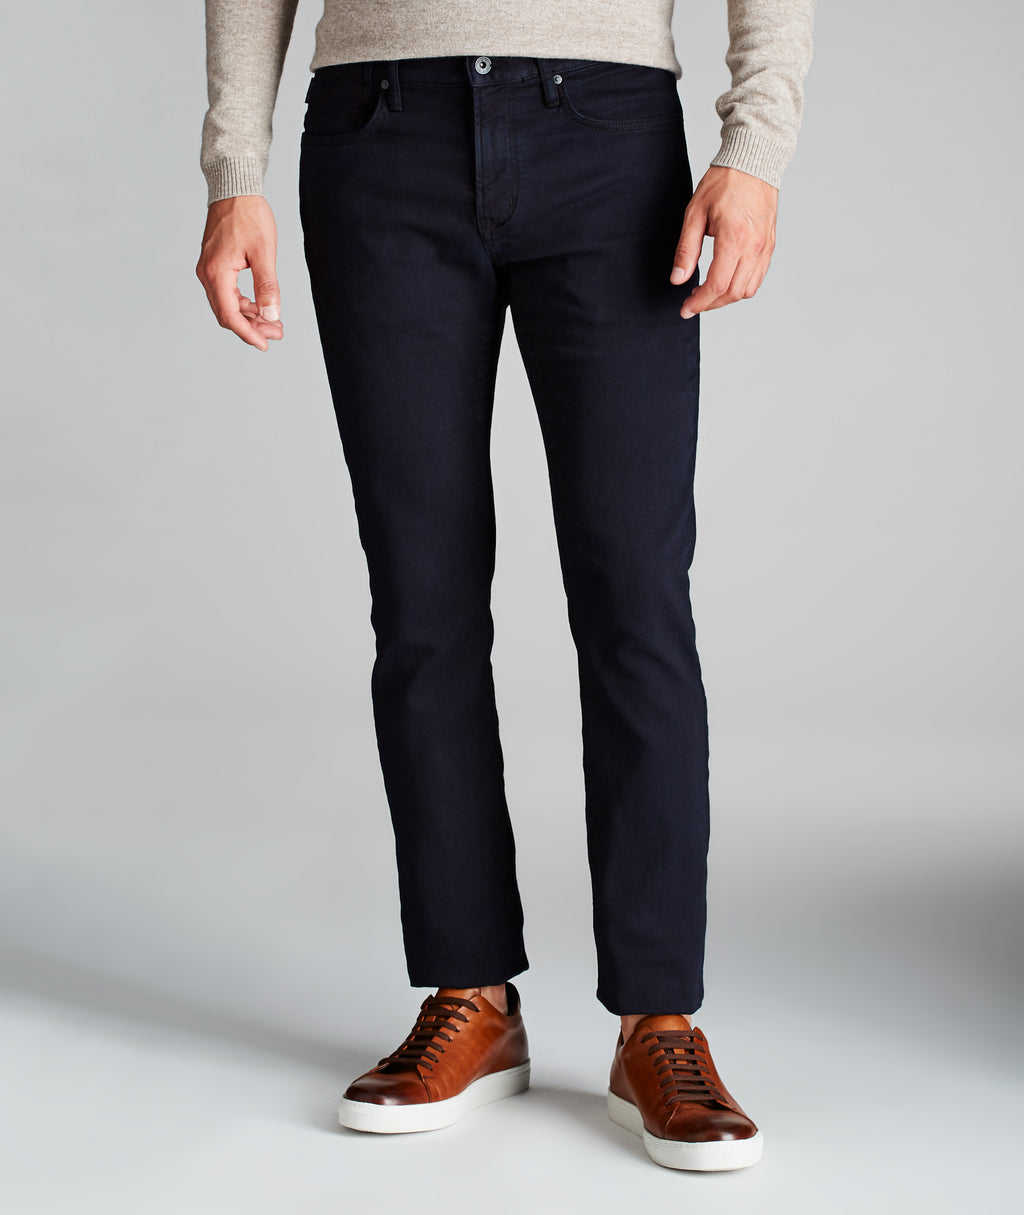 John Varvatos - Bowery Slim Stretch Jeans